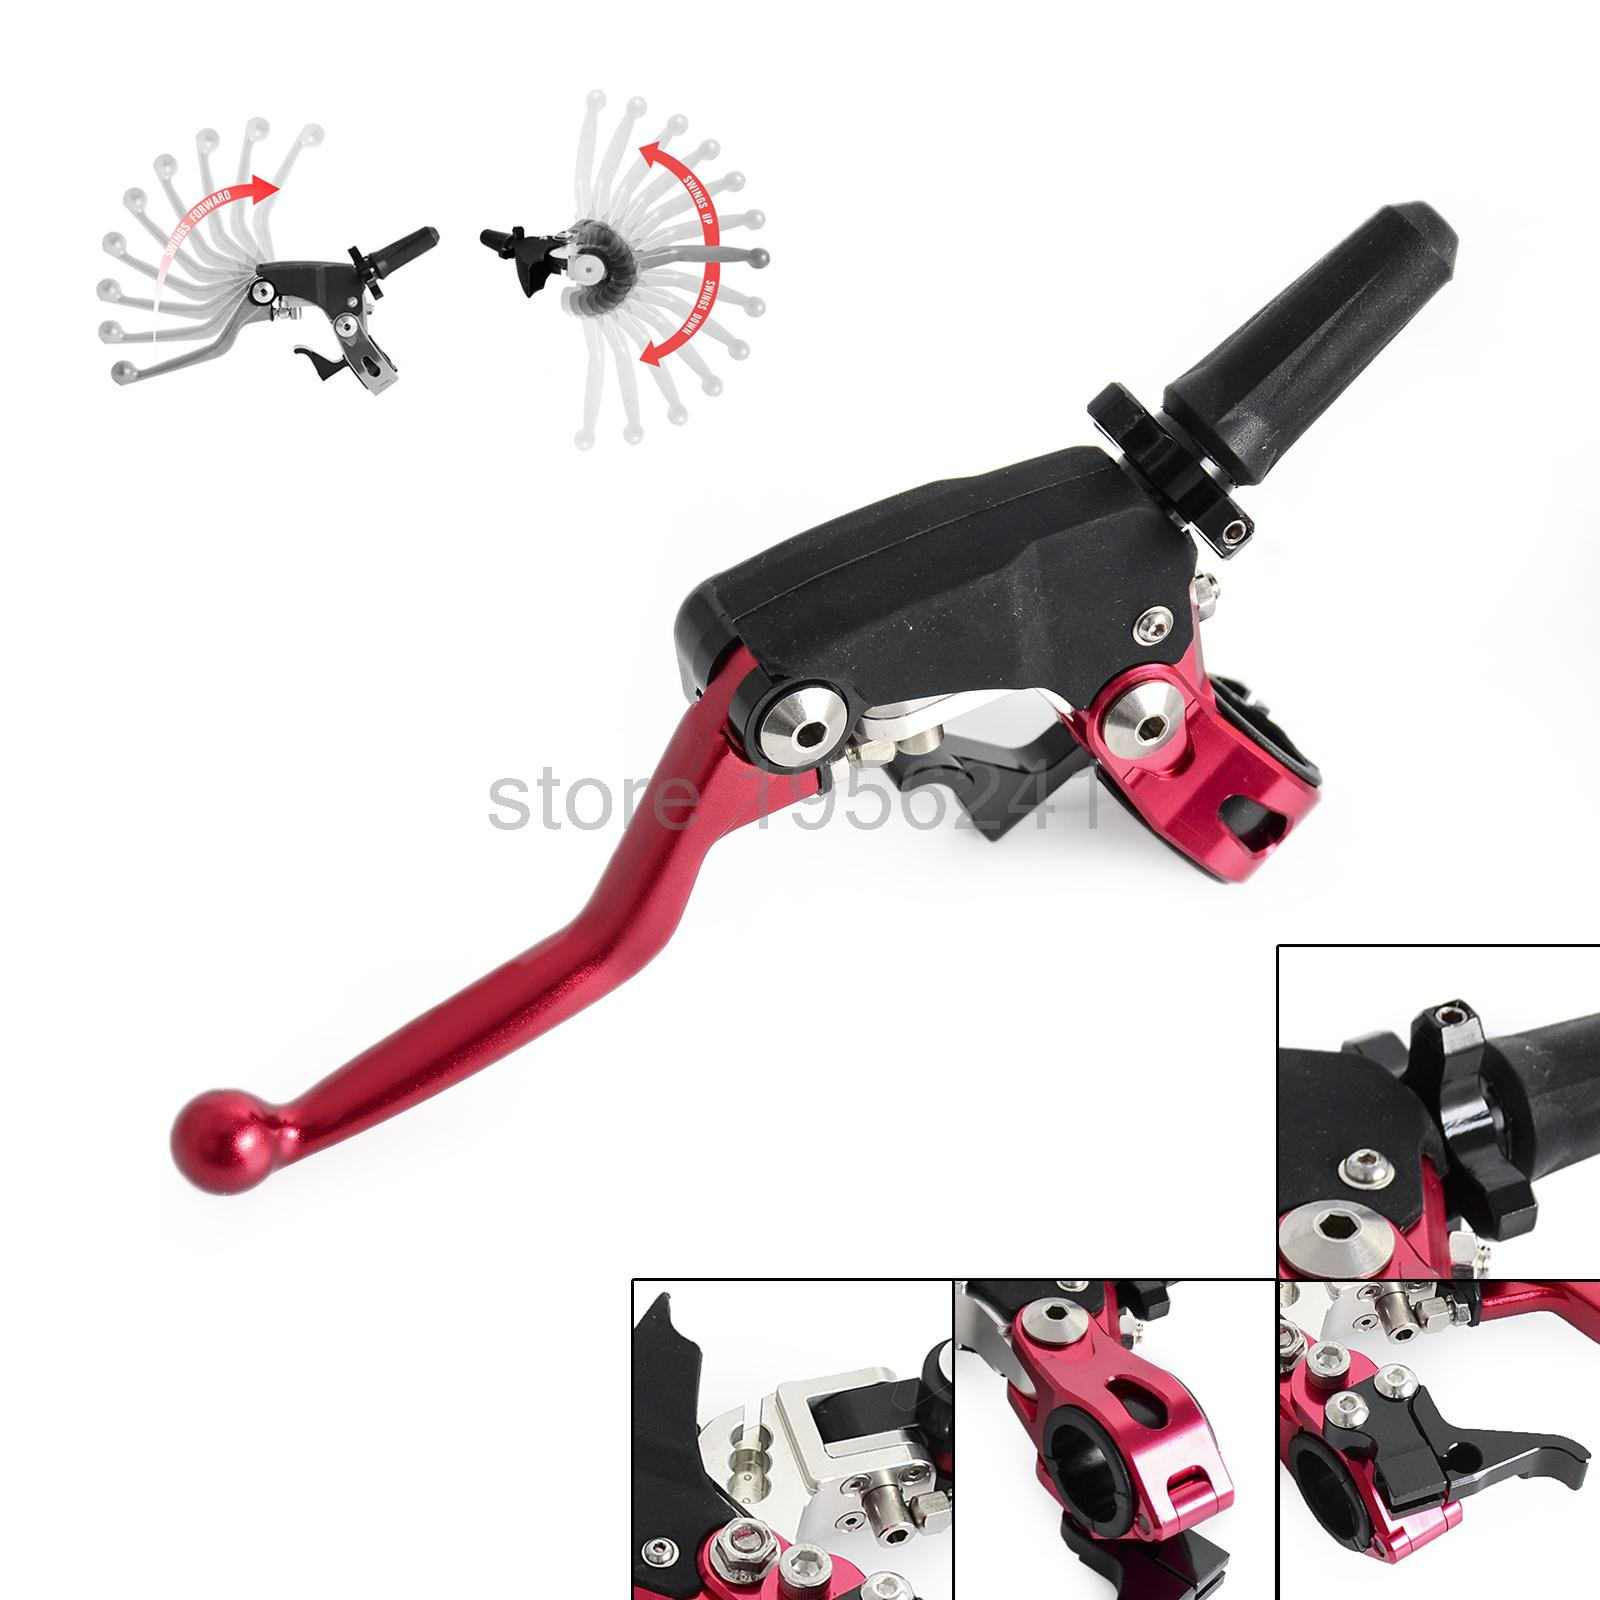 Forged Dirt Bikes Folding Clutch Lever Assembly Perch w/ Hot Start Lever For Honda CR CRF XL XR 125 150 250 400 450 650 arte lamp a3025sp 9cc